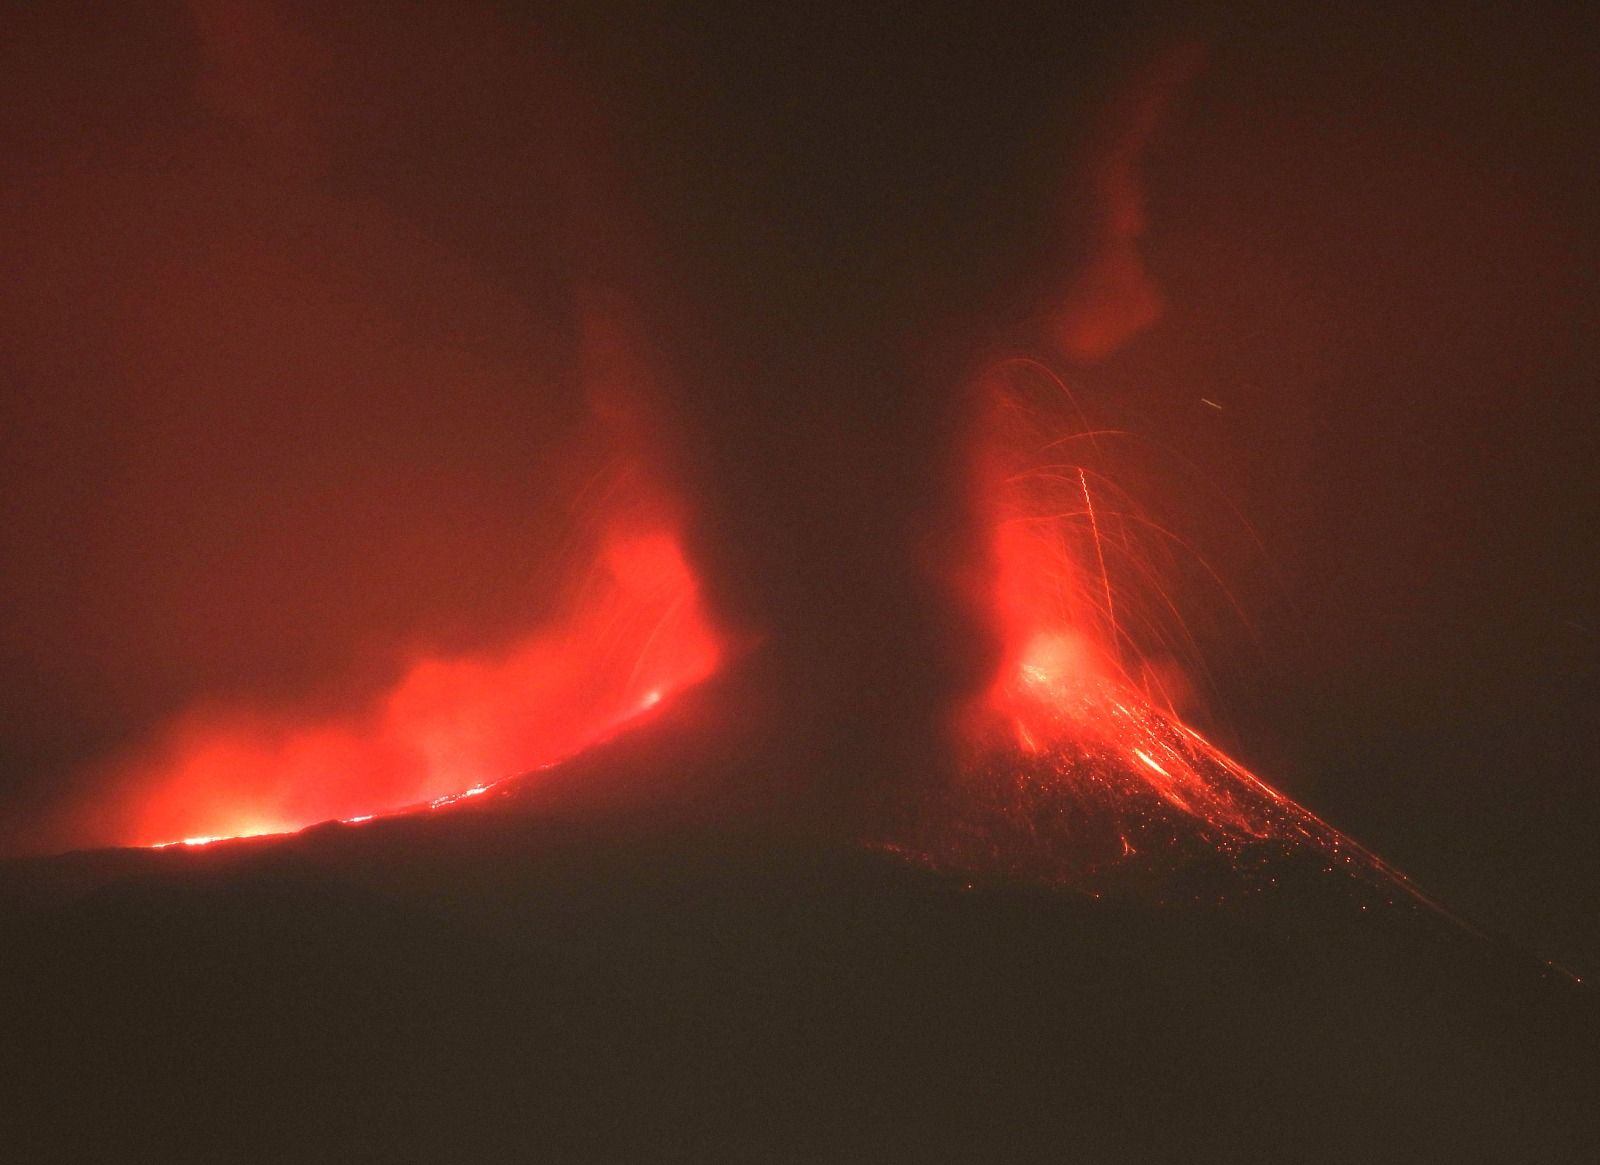 Lava fountain from Etna's New SE crater early this morning (image: INGVvulcani / facebook)